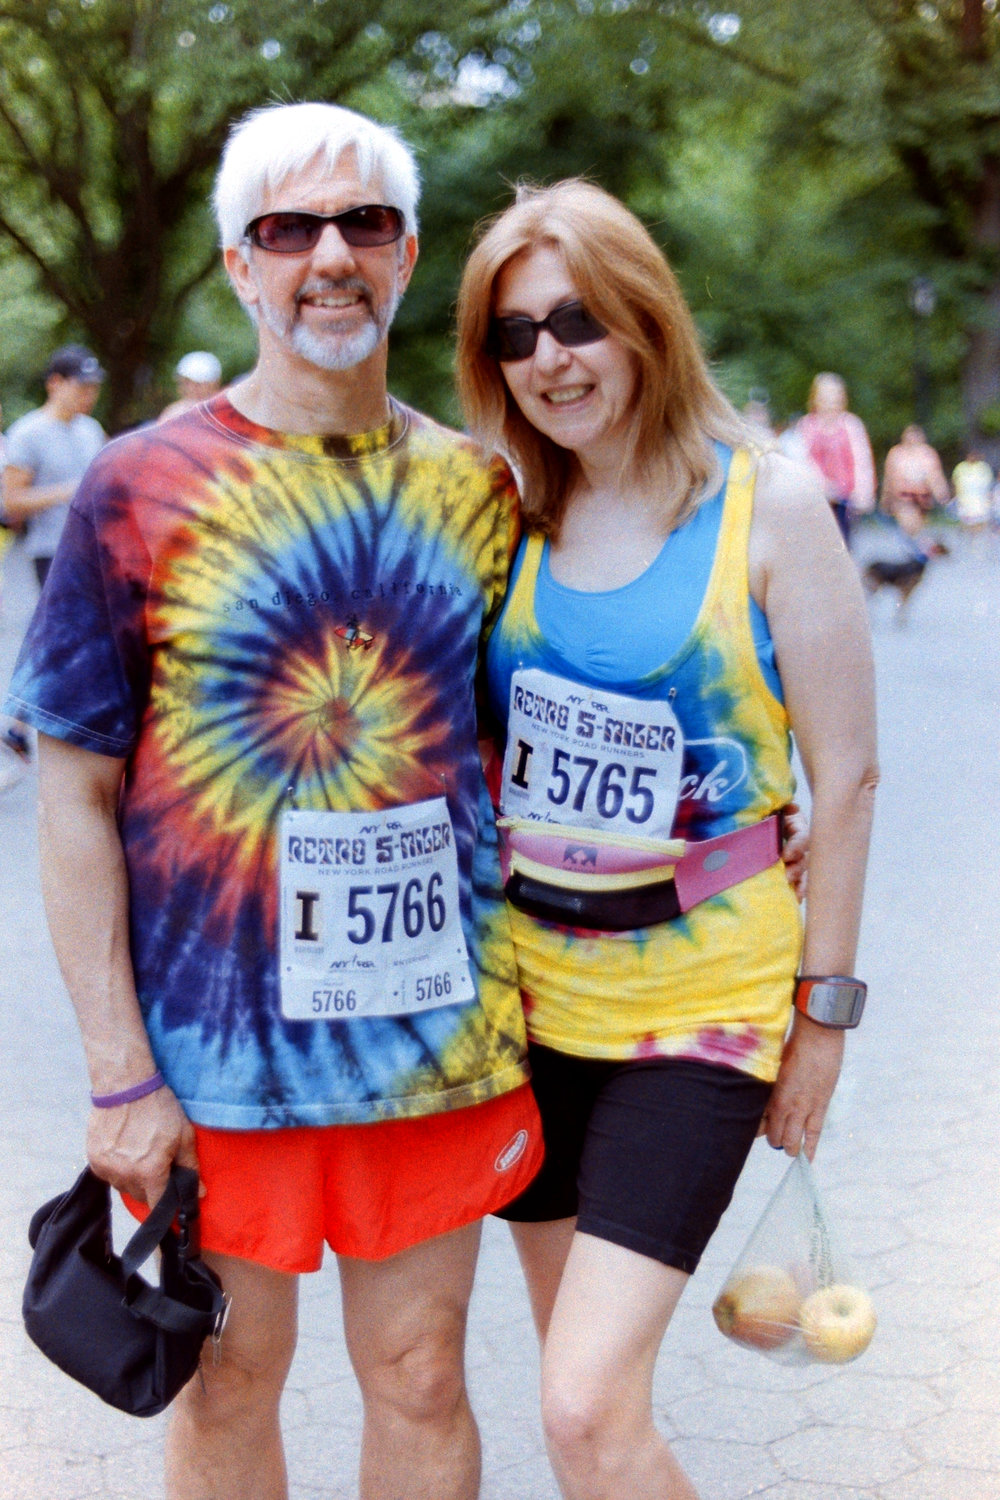 Tie-dye: Always in vogue at the NYRR Retro 5-Miler